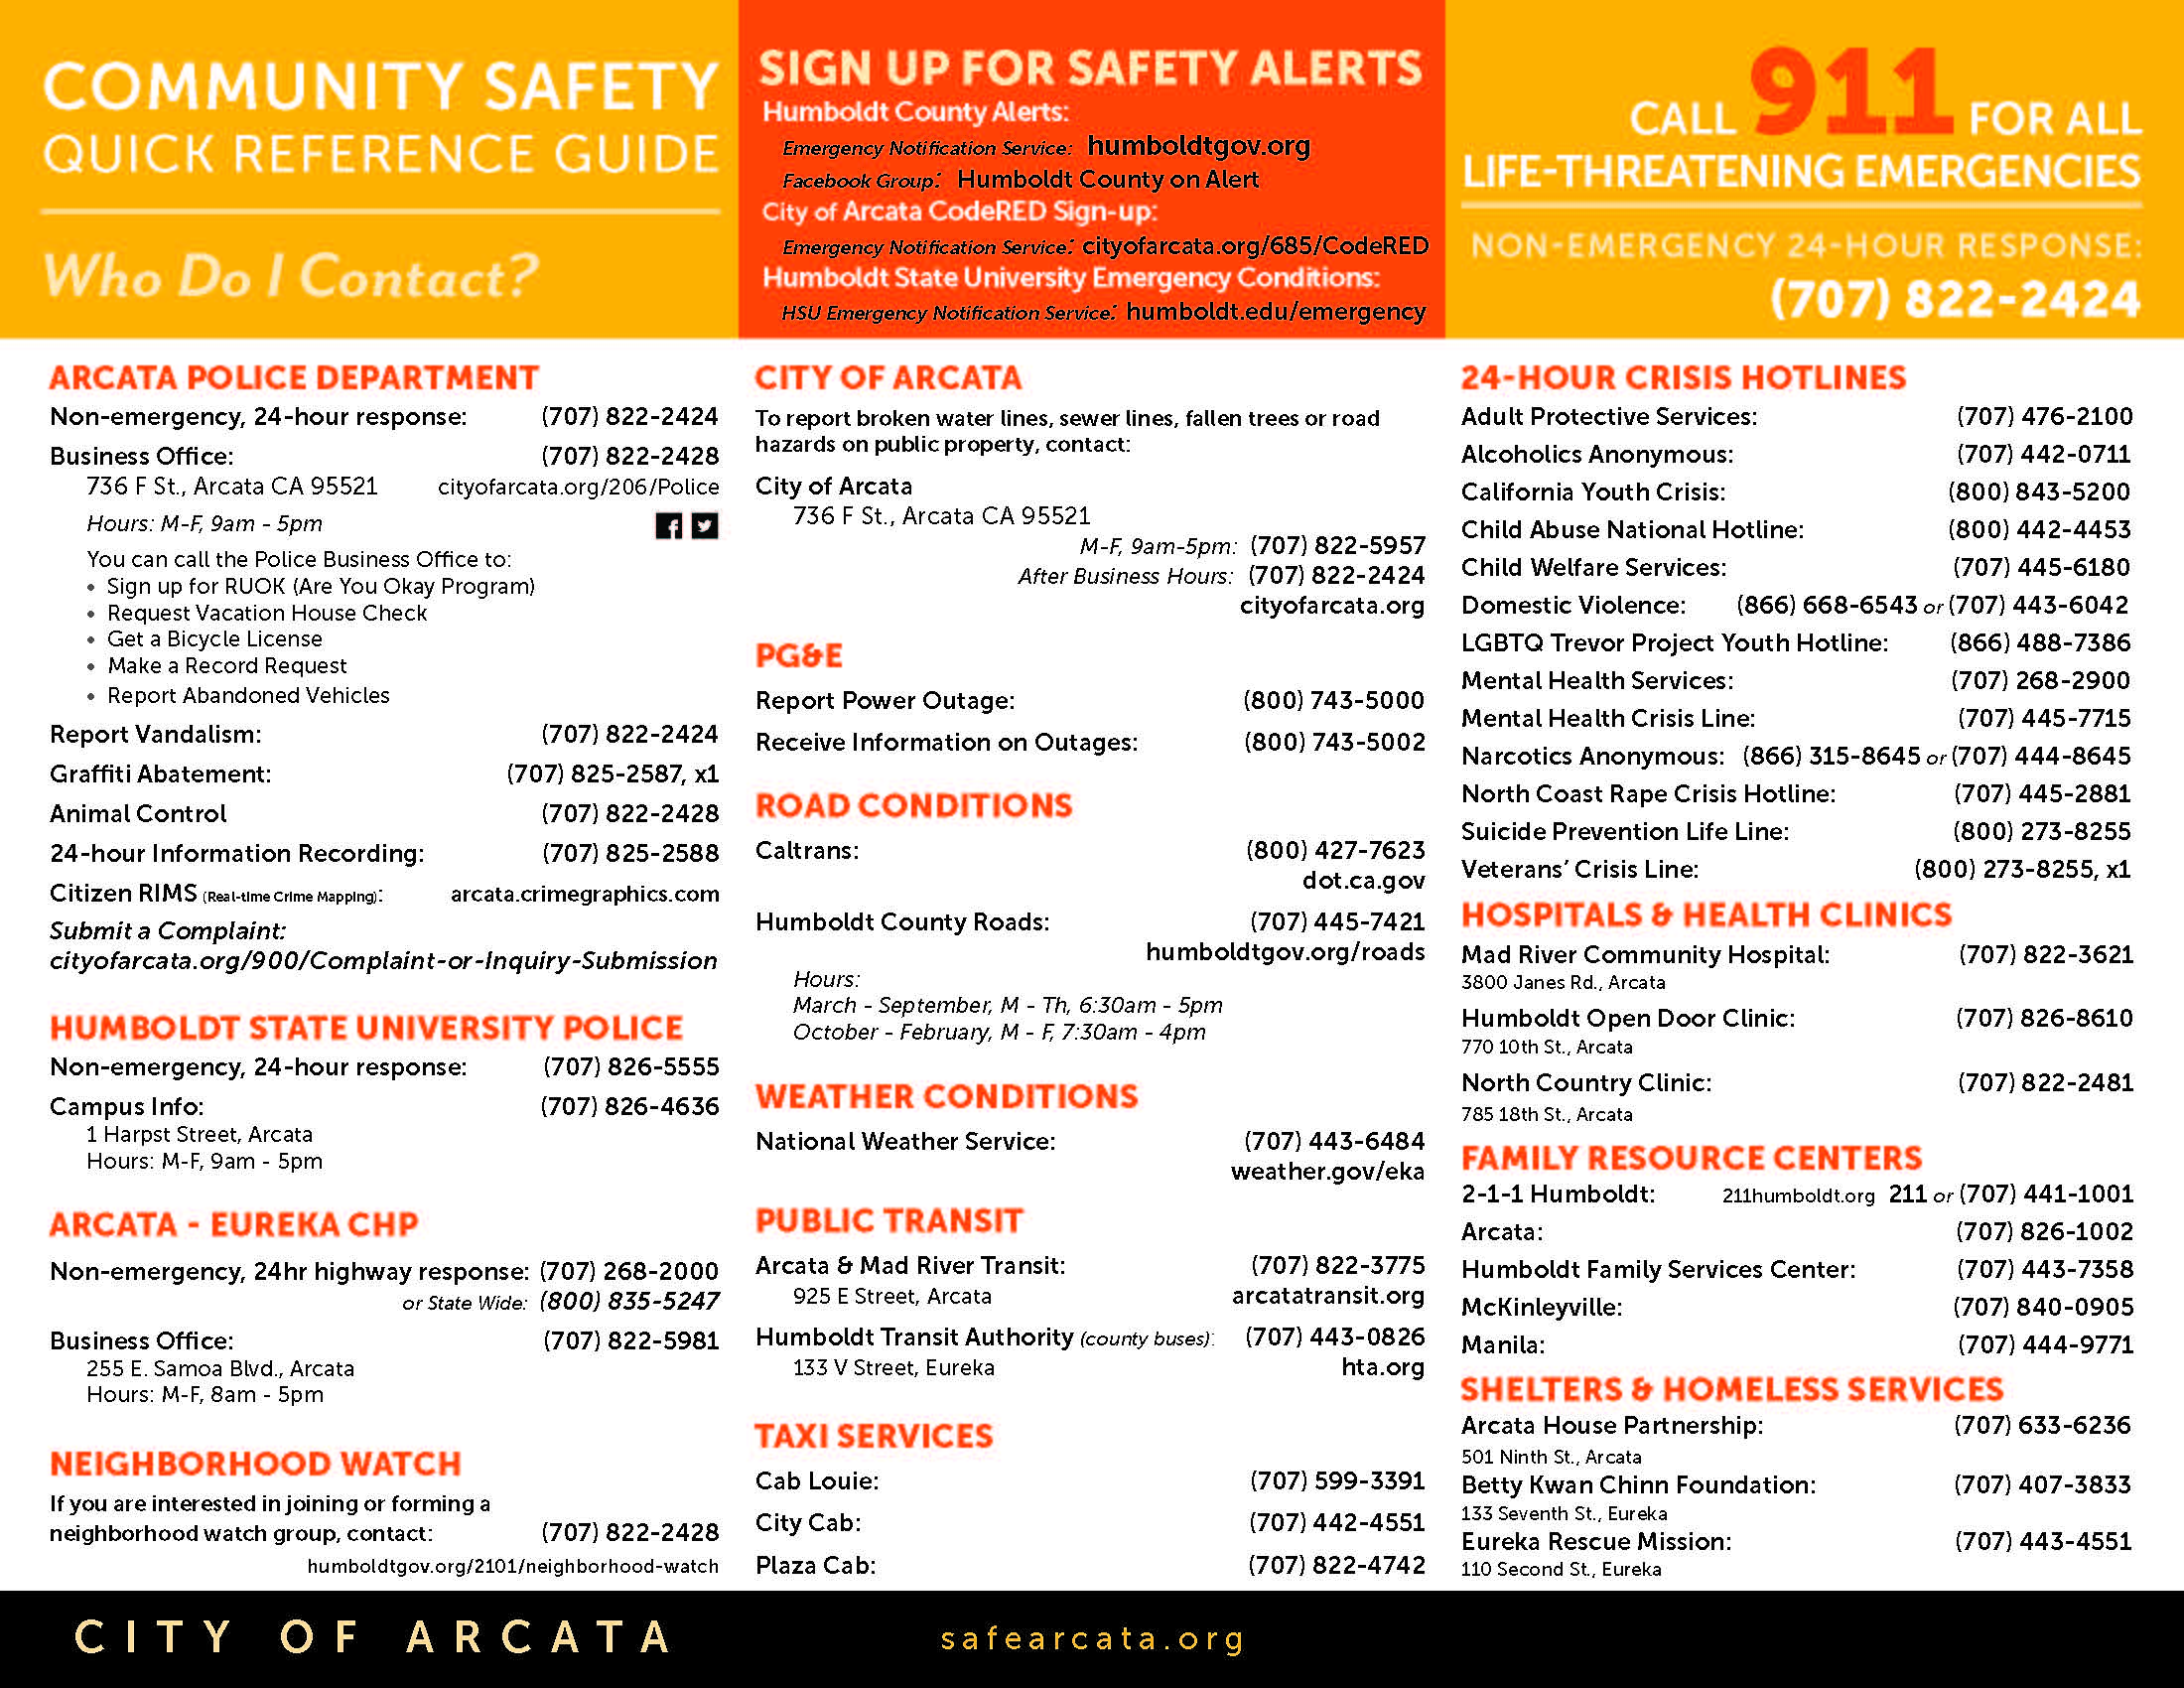 Community Safety Quick Reference Guide, January 2021_Page_2